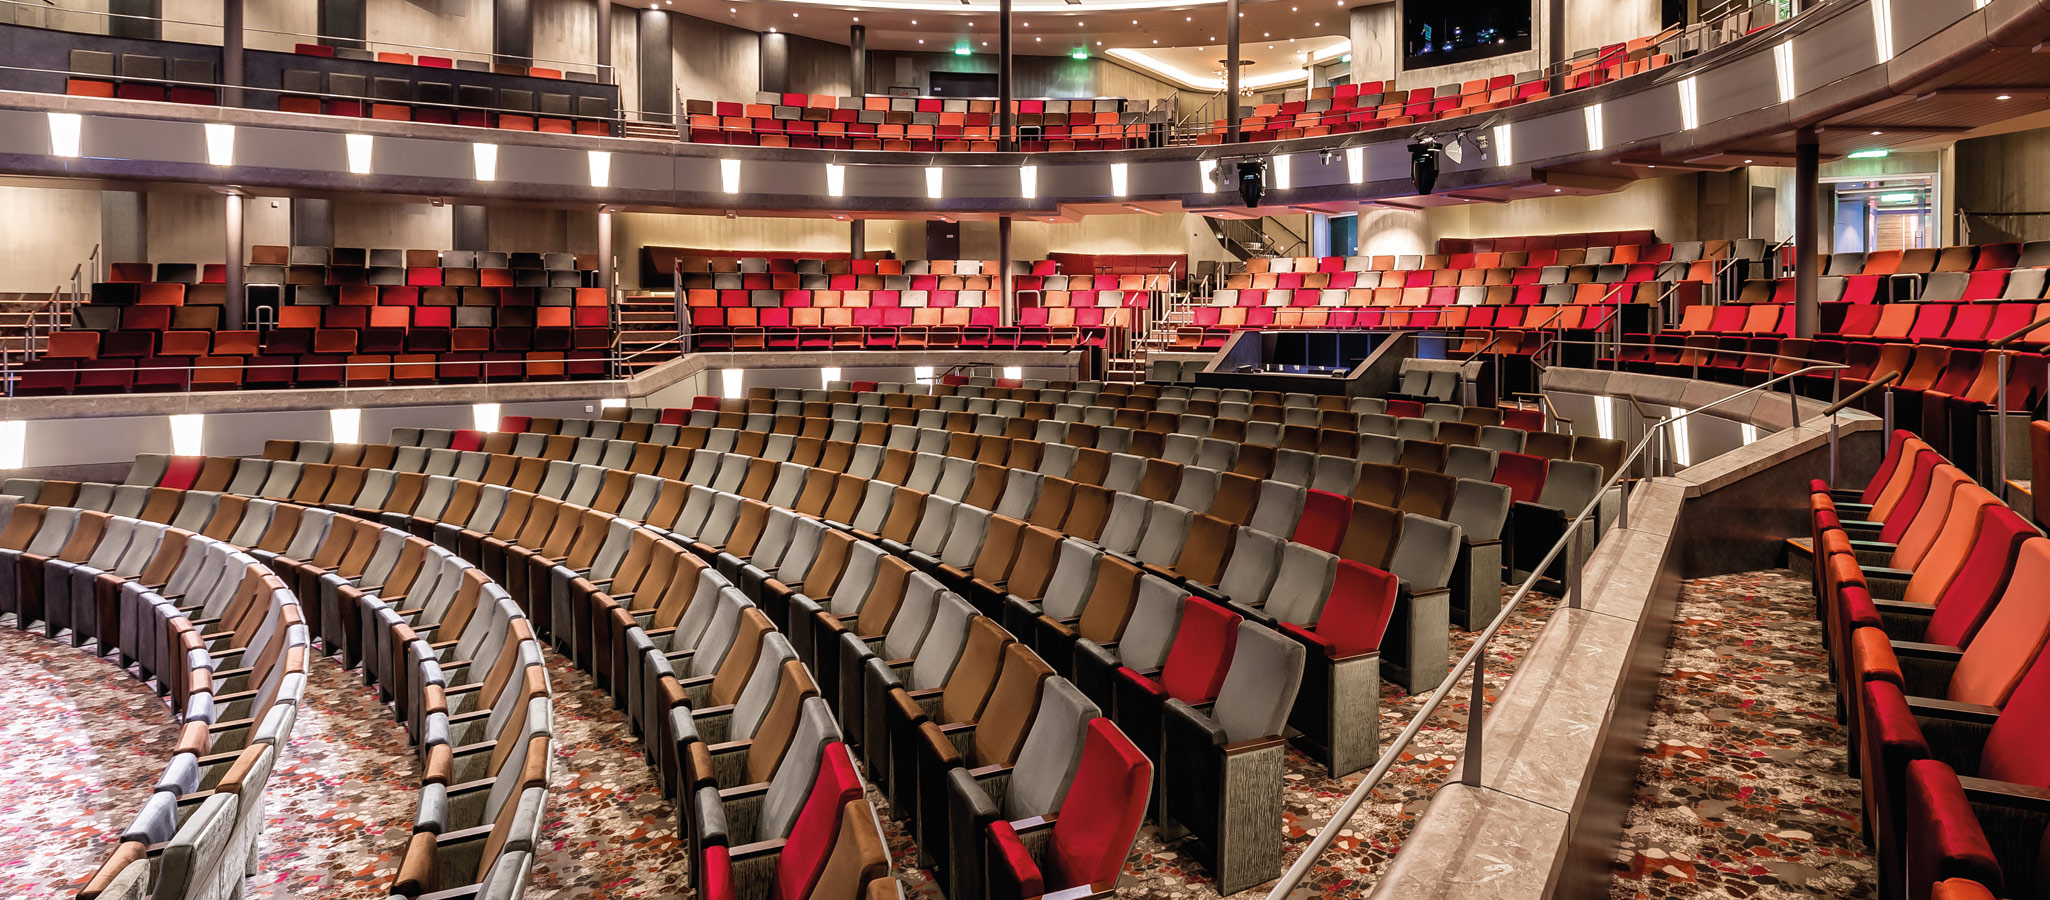 Theatres offer excellent space thus encouraging greater meeting attendance and participation.